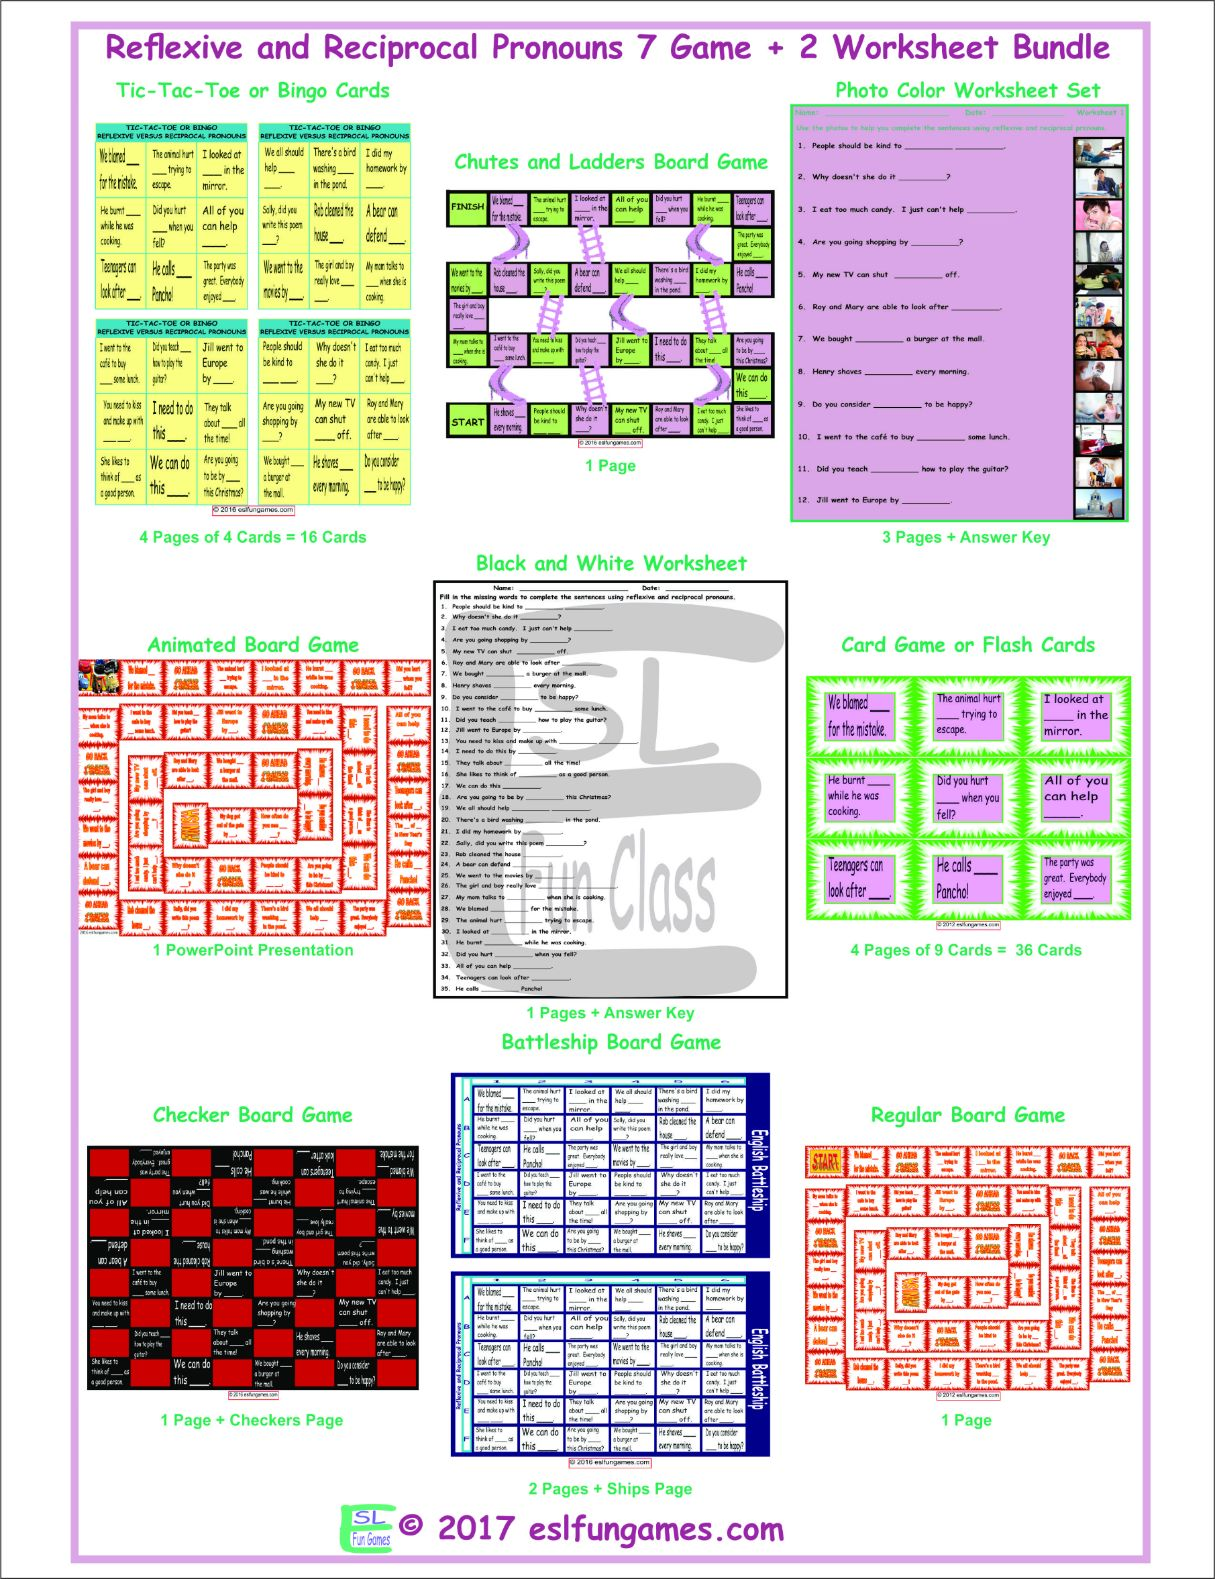 Reflexive And Reciprocal Pronouns 7 Game Plus 2 Worksheet